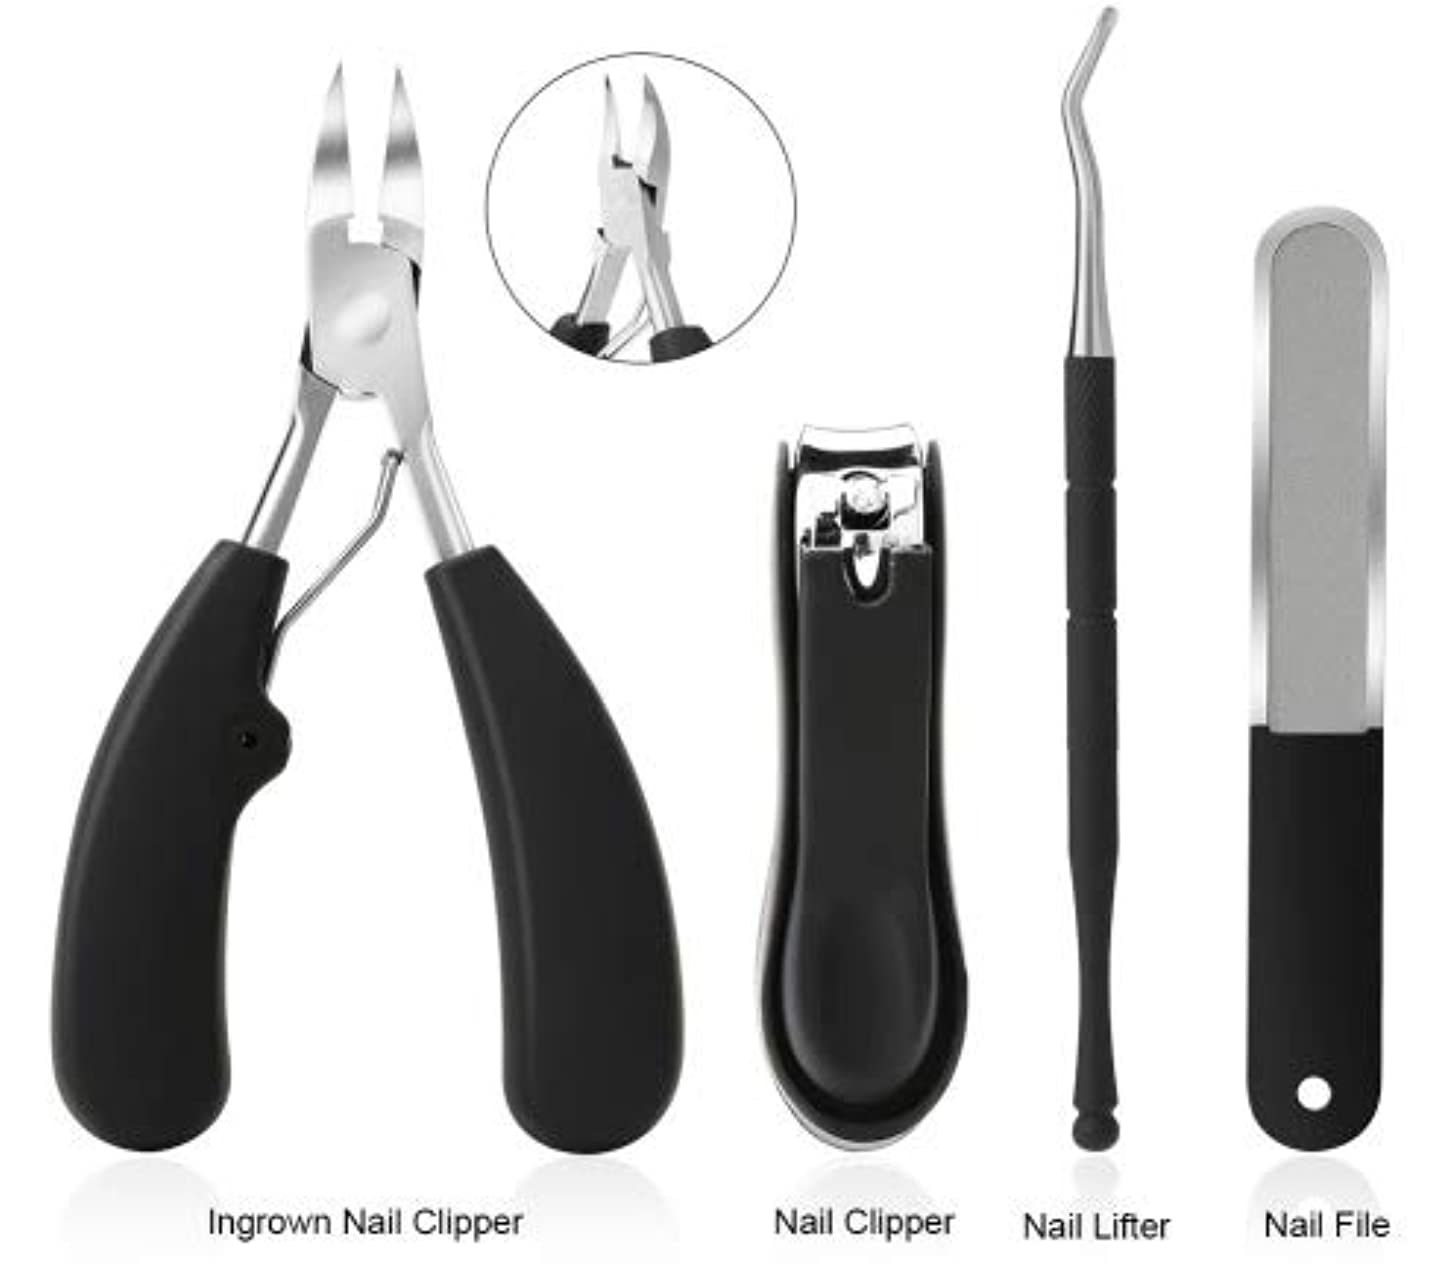 後継敏感な幻影Izmirli - ANLAN Nail Cuticle Pusher Clipper Scissor Nipper Tweezer Picker Stainless Steel Manicure DIY Nail Art...